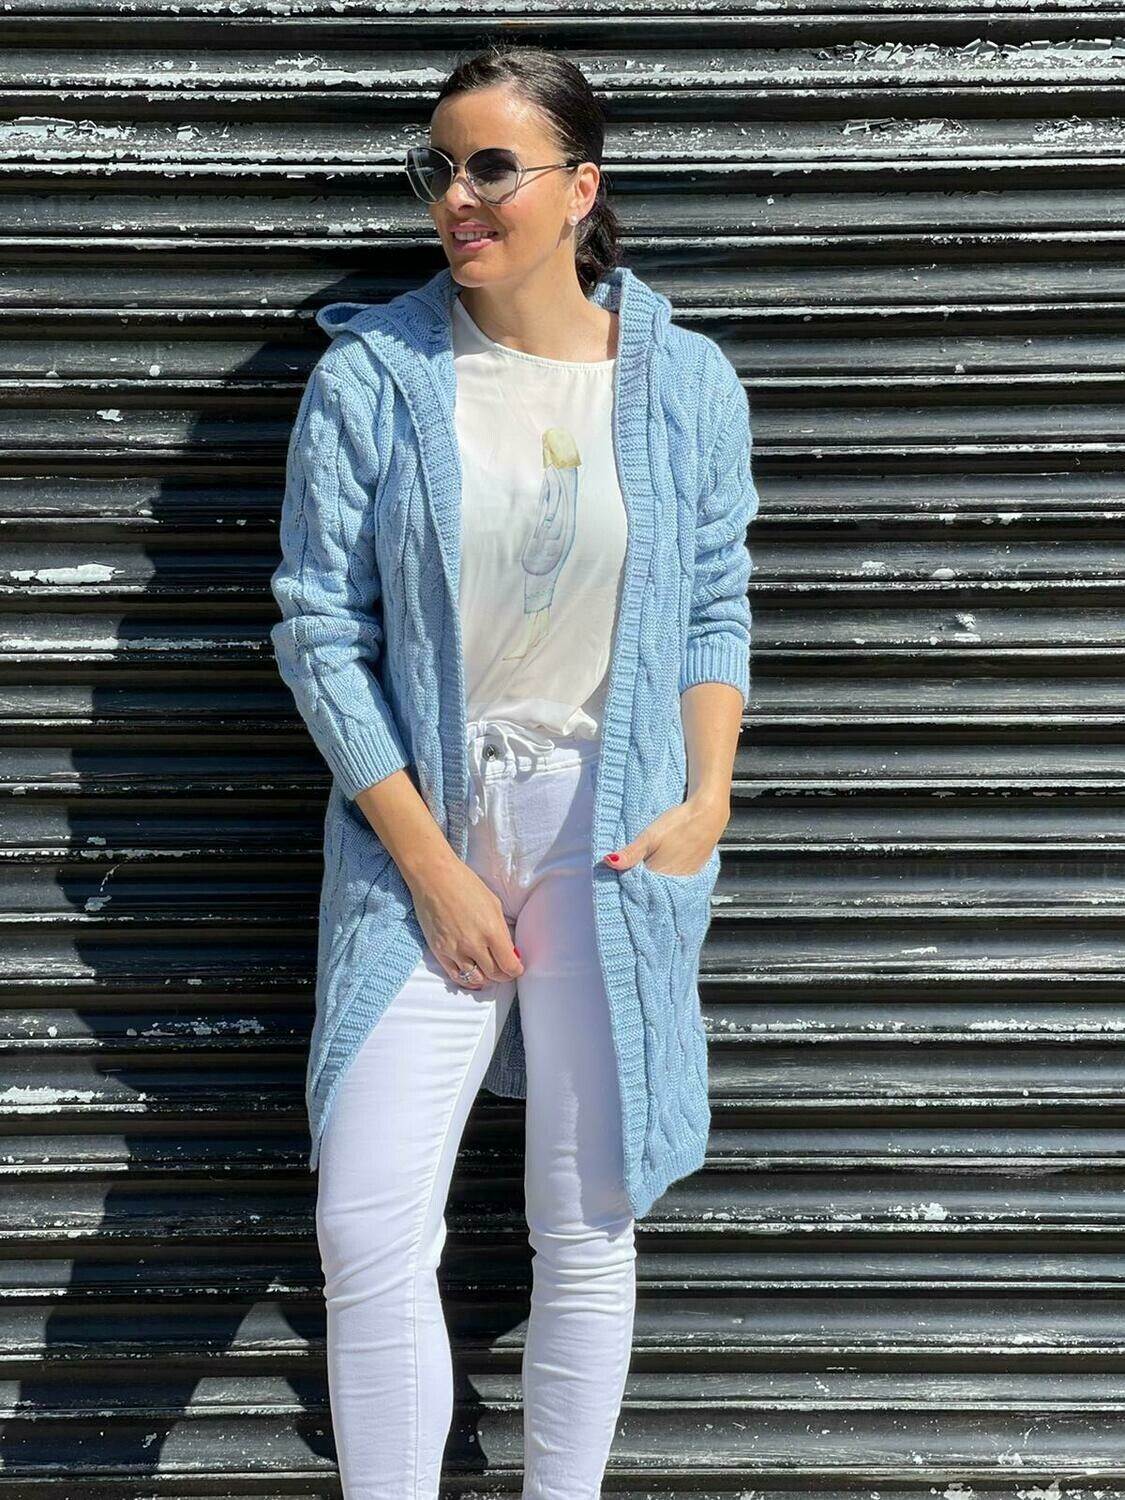 'Cable Cardigan' in Sky Blue